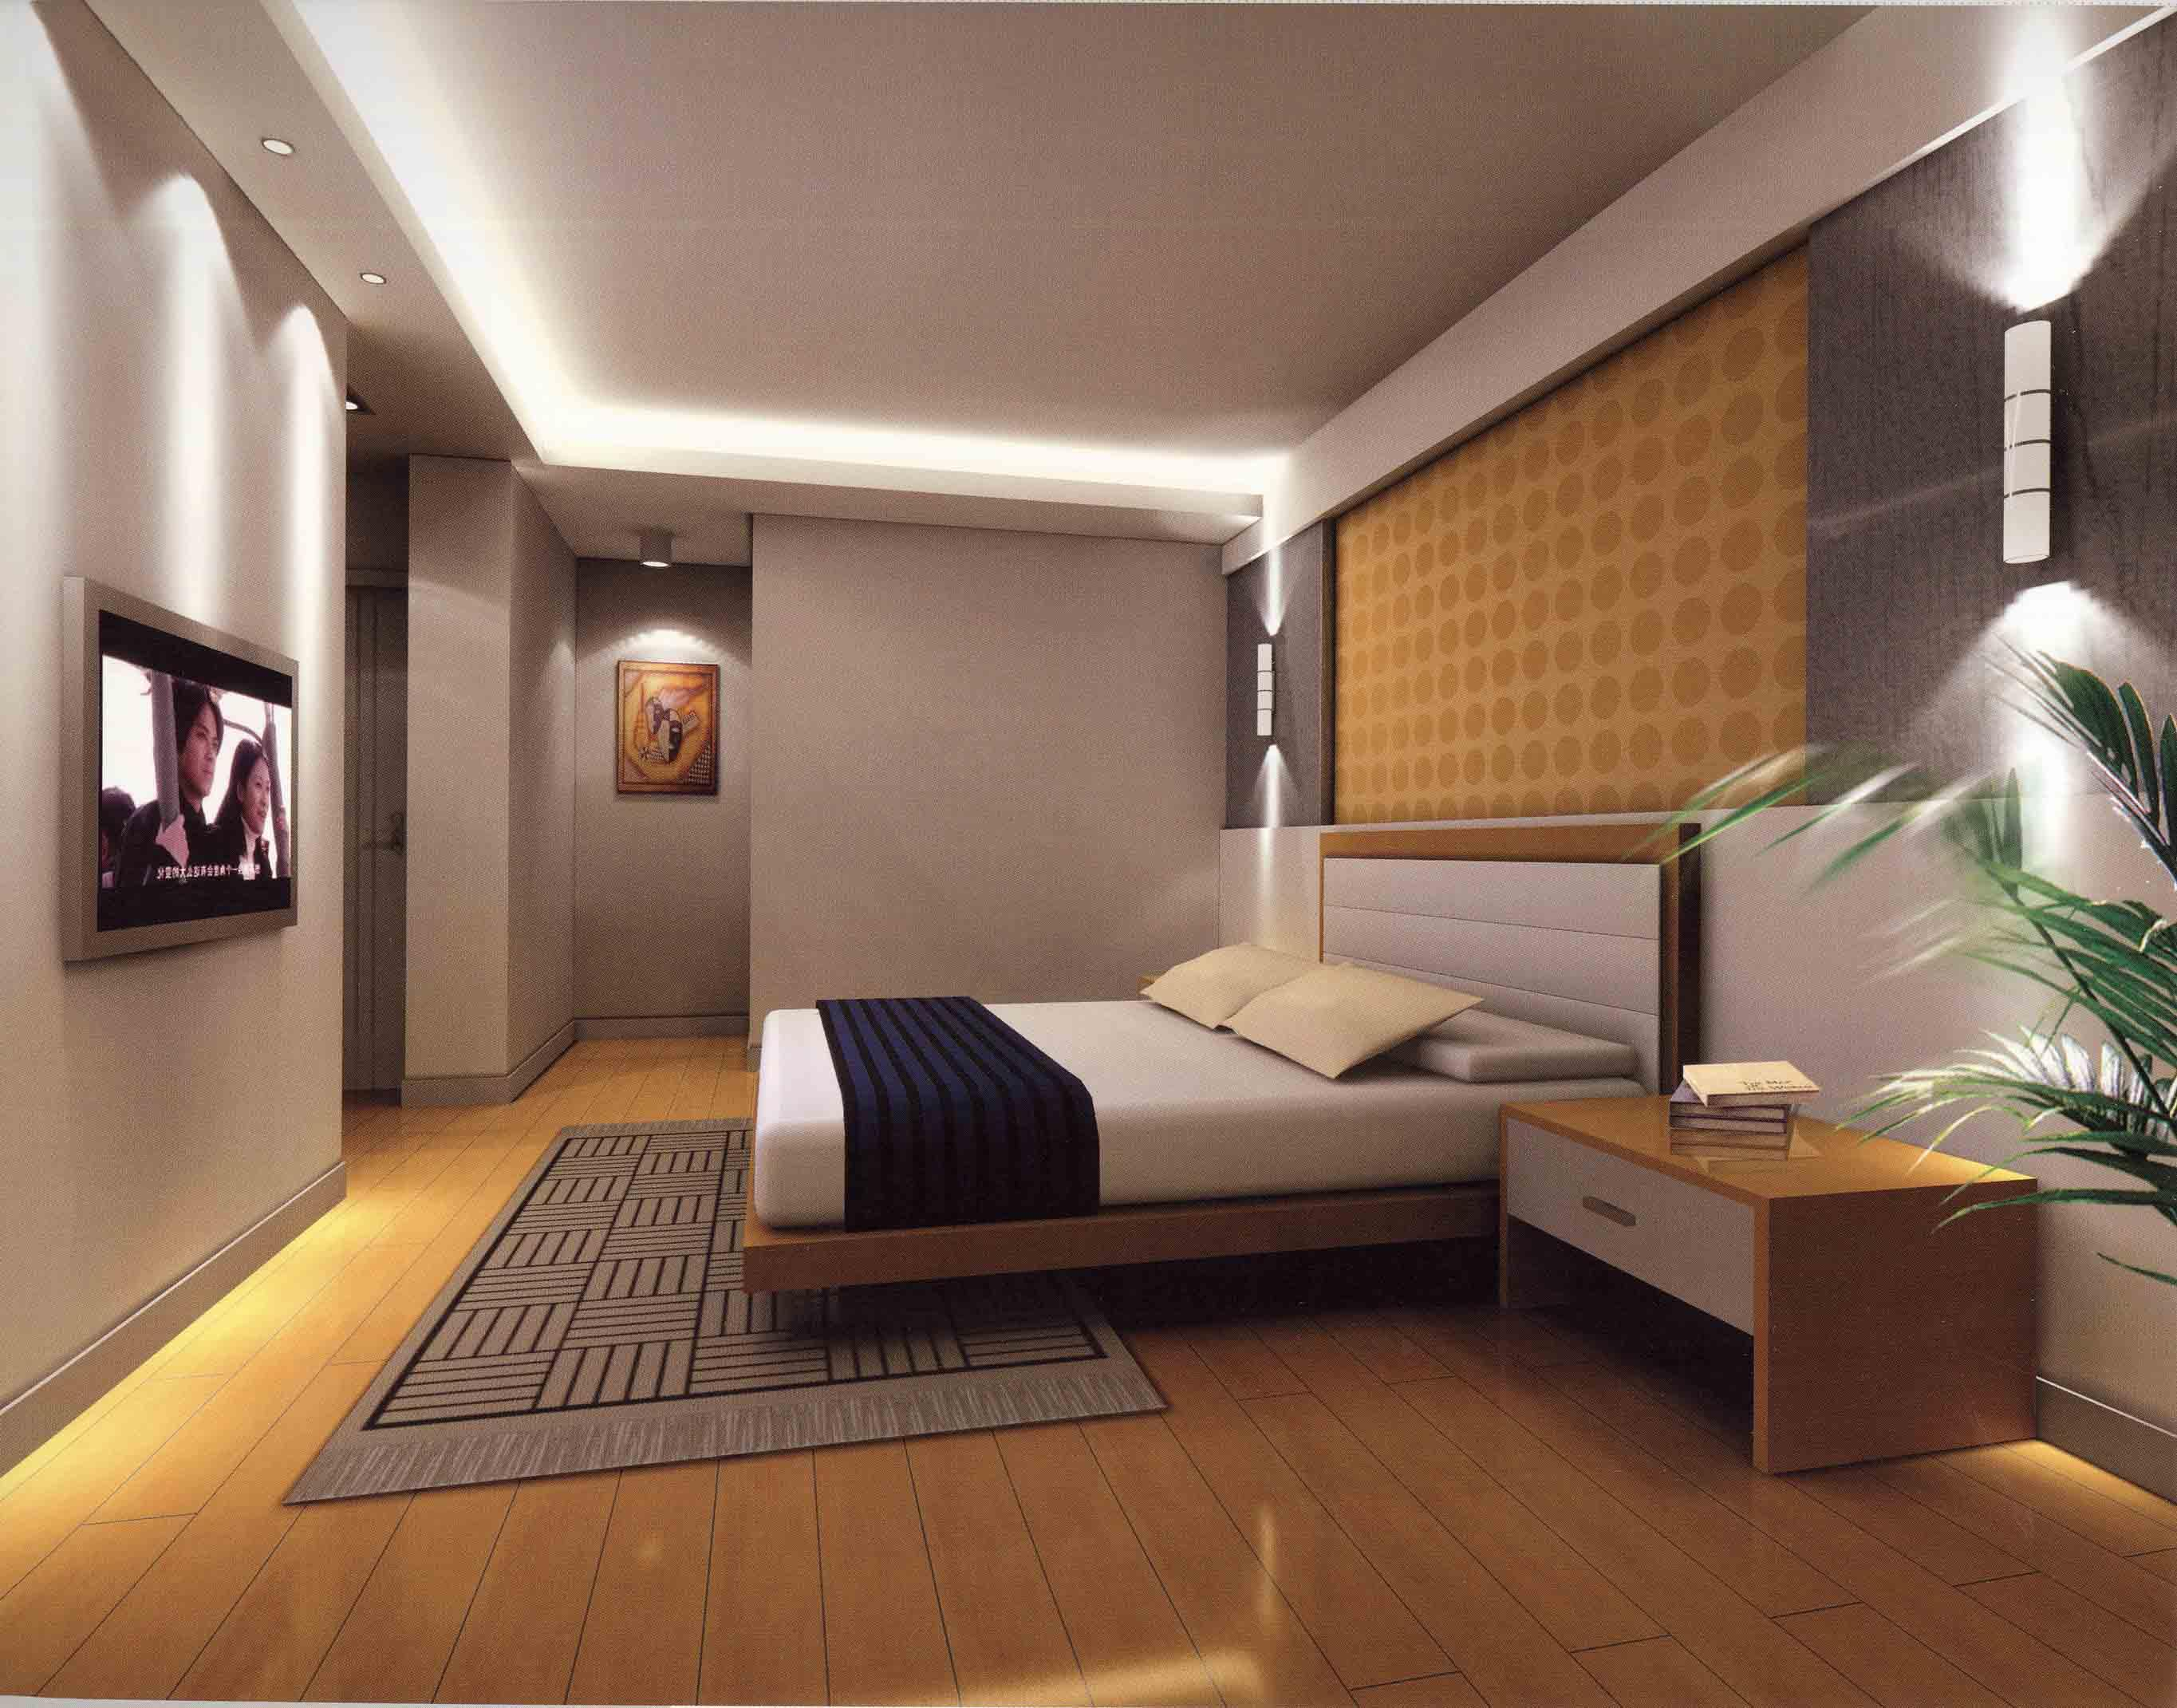 25 cool bedroom designs collection Master bedroom floor design